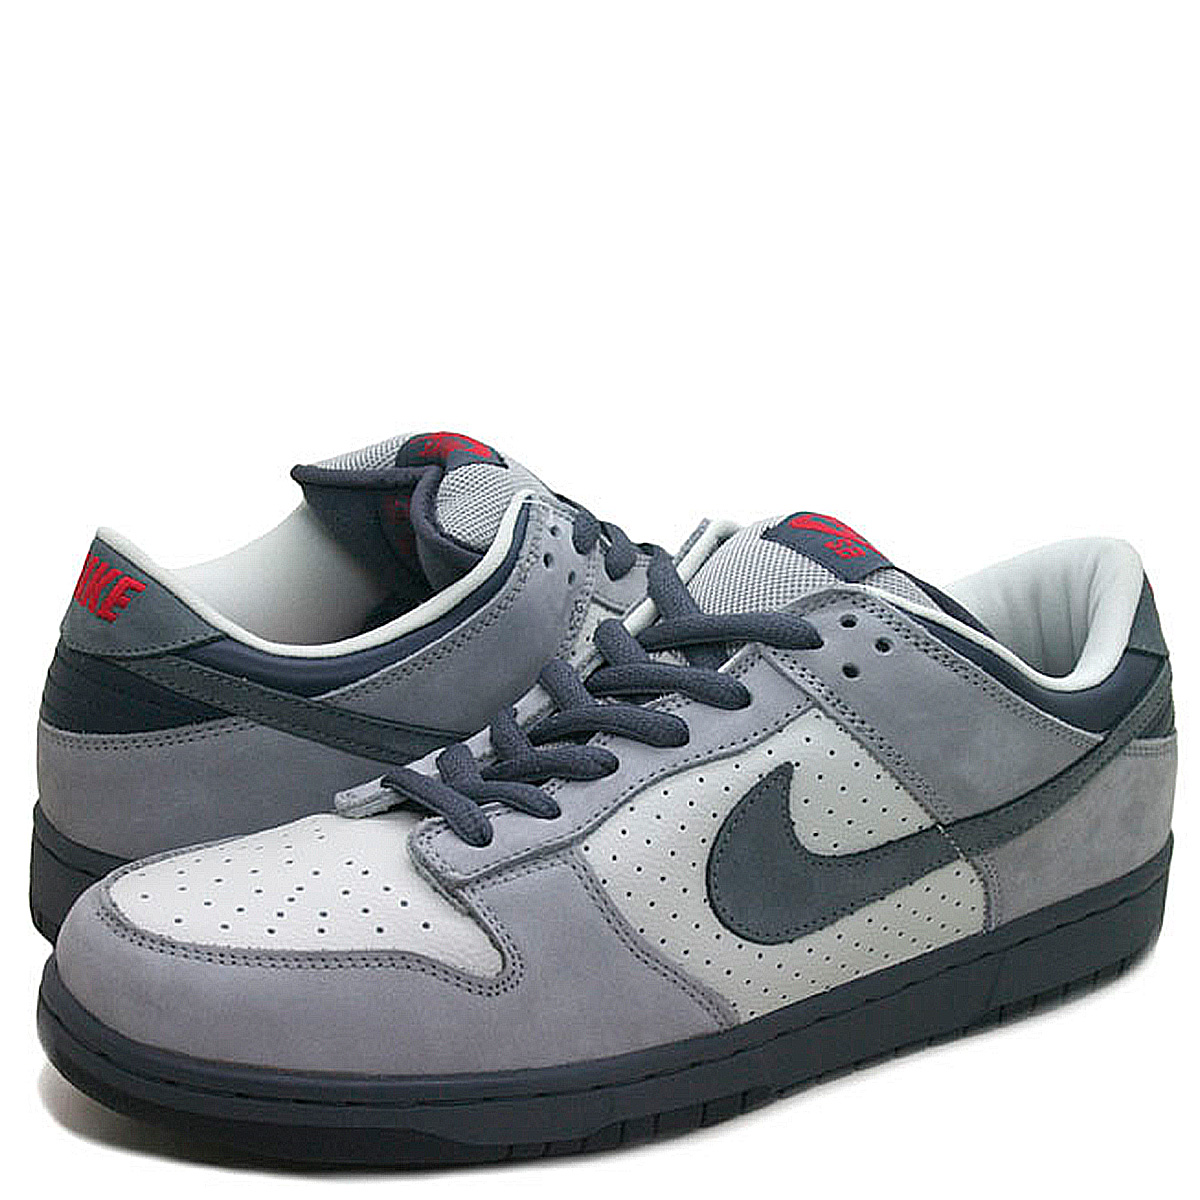 best website 8fd11 e1120 NIKE Nike SB dunk sneakers men DUNK LOW PRO BAND AID 304,292-006 gray